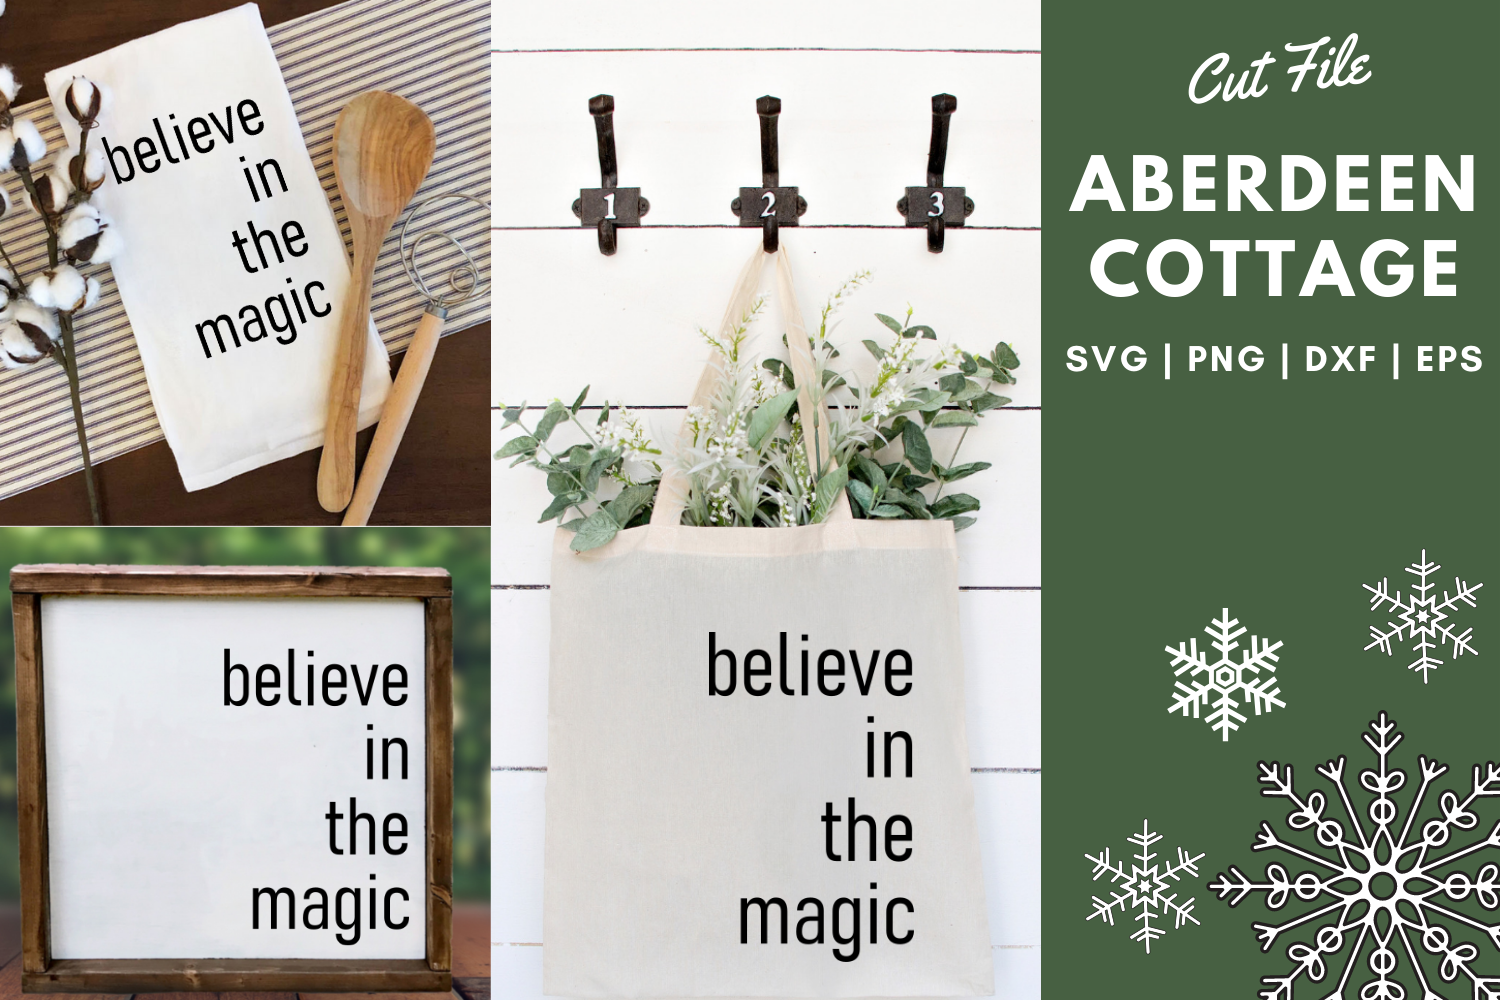 Believe In The Magic of Christmas 2 SVG   PNG   DXF   EPS example image 1